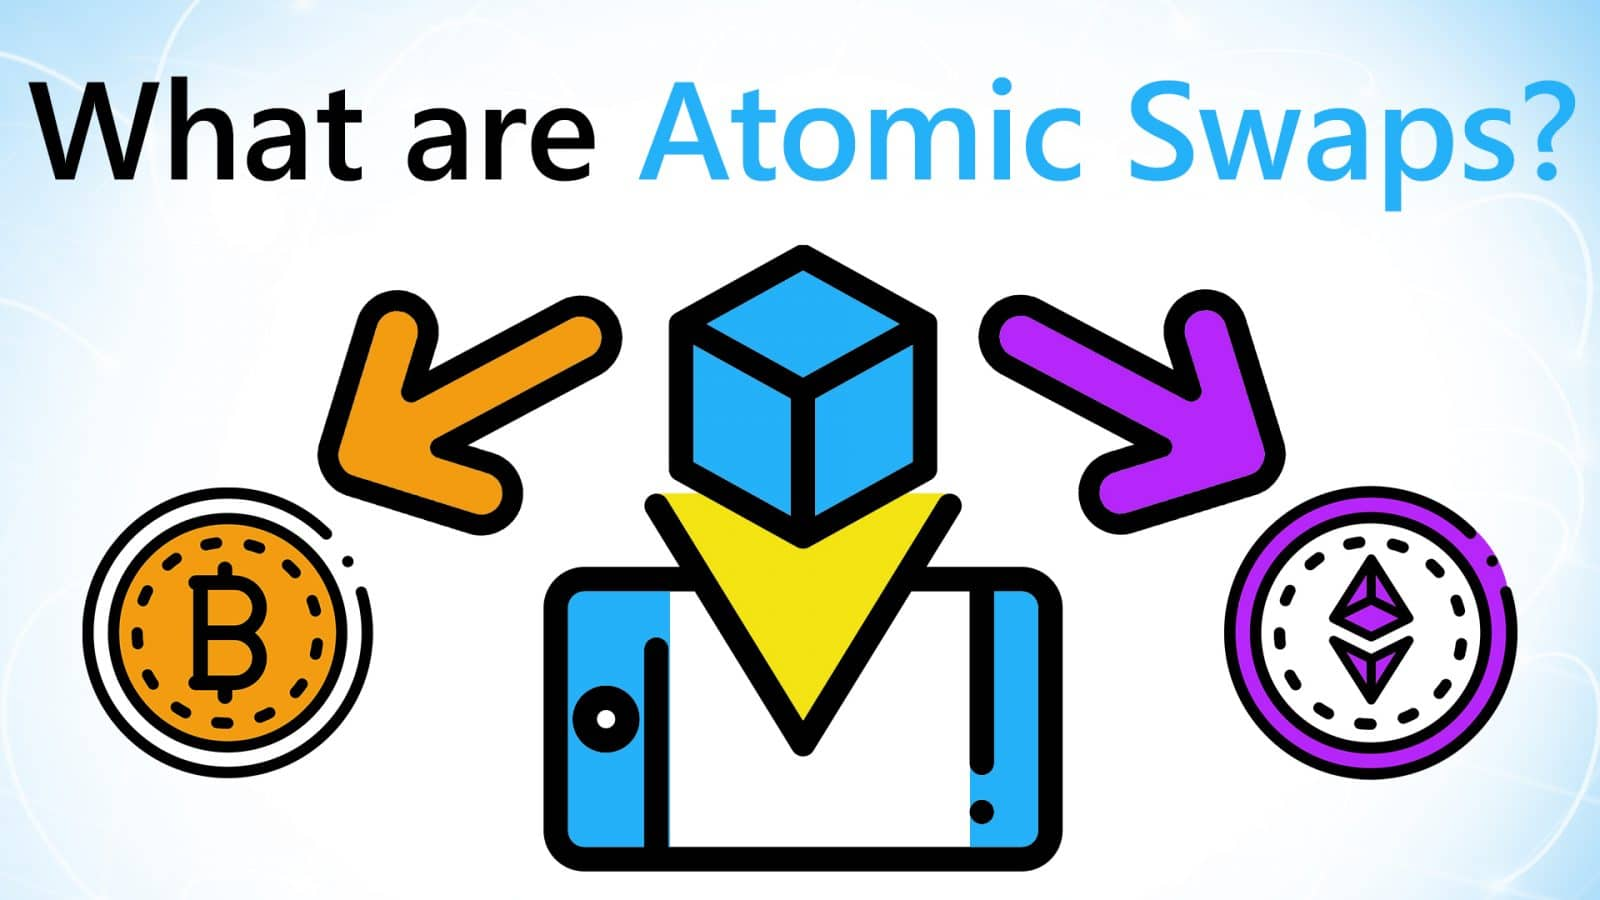 Video Guide: What are Atomic Swaps?